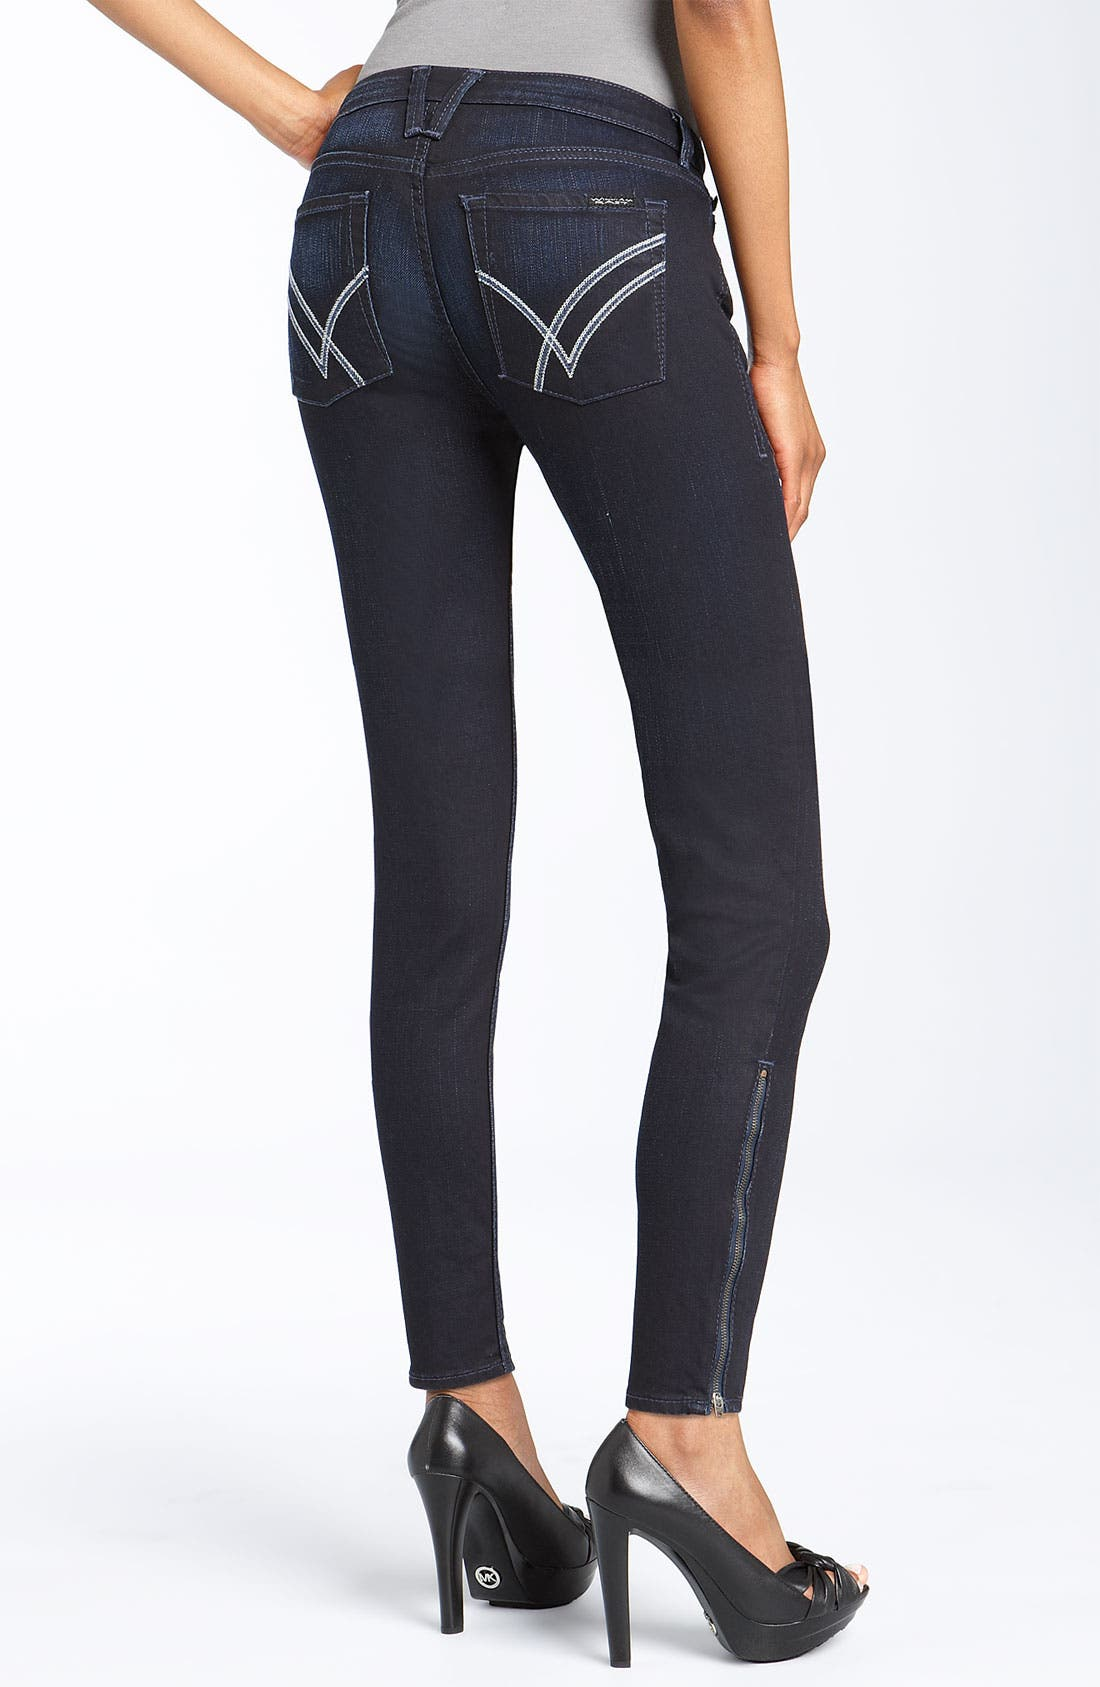 Denim Leggings. A woman always on the cutting edge of fashion simply can't go wrong in a pair of denim leggings. Take skinny jeans to a whole new level with pull-on stretch knit or cotton spandex material from brand names like 7 For All Mankind, HUE and ECI. The stretch fabrication of these leggings makes them ideal to be worn from day to evening, allowing you to style your outfits around .